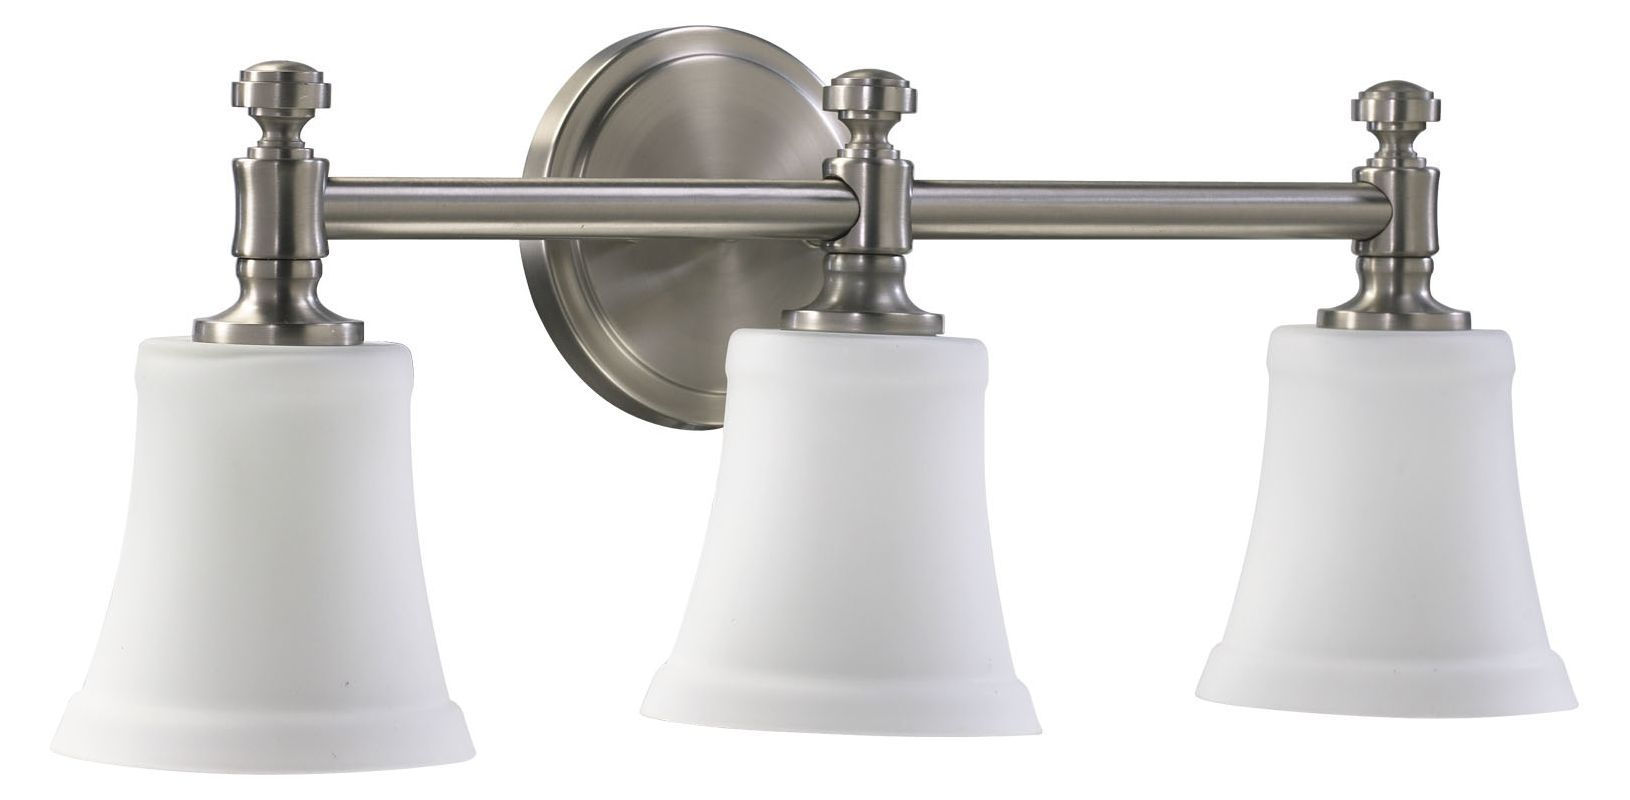 Quorum International 5122-3 3 Light Down Lighting Bathroom Fixture Sale $123.00 ITEM: bci987555 ID#:5122-3-65 :